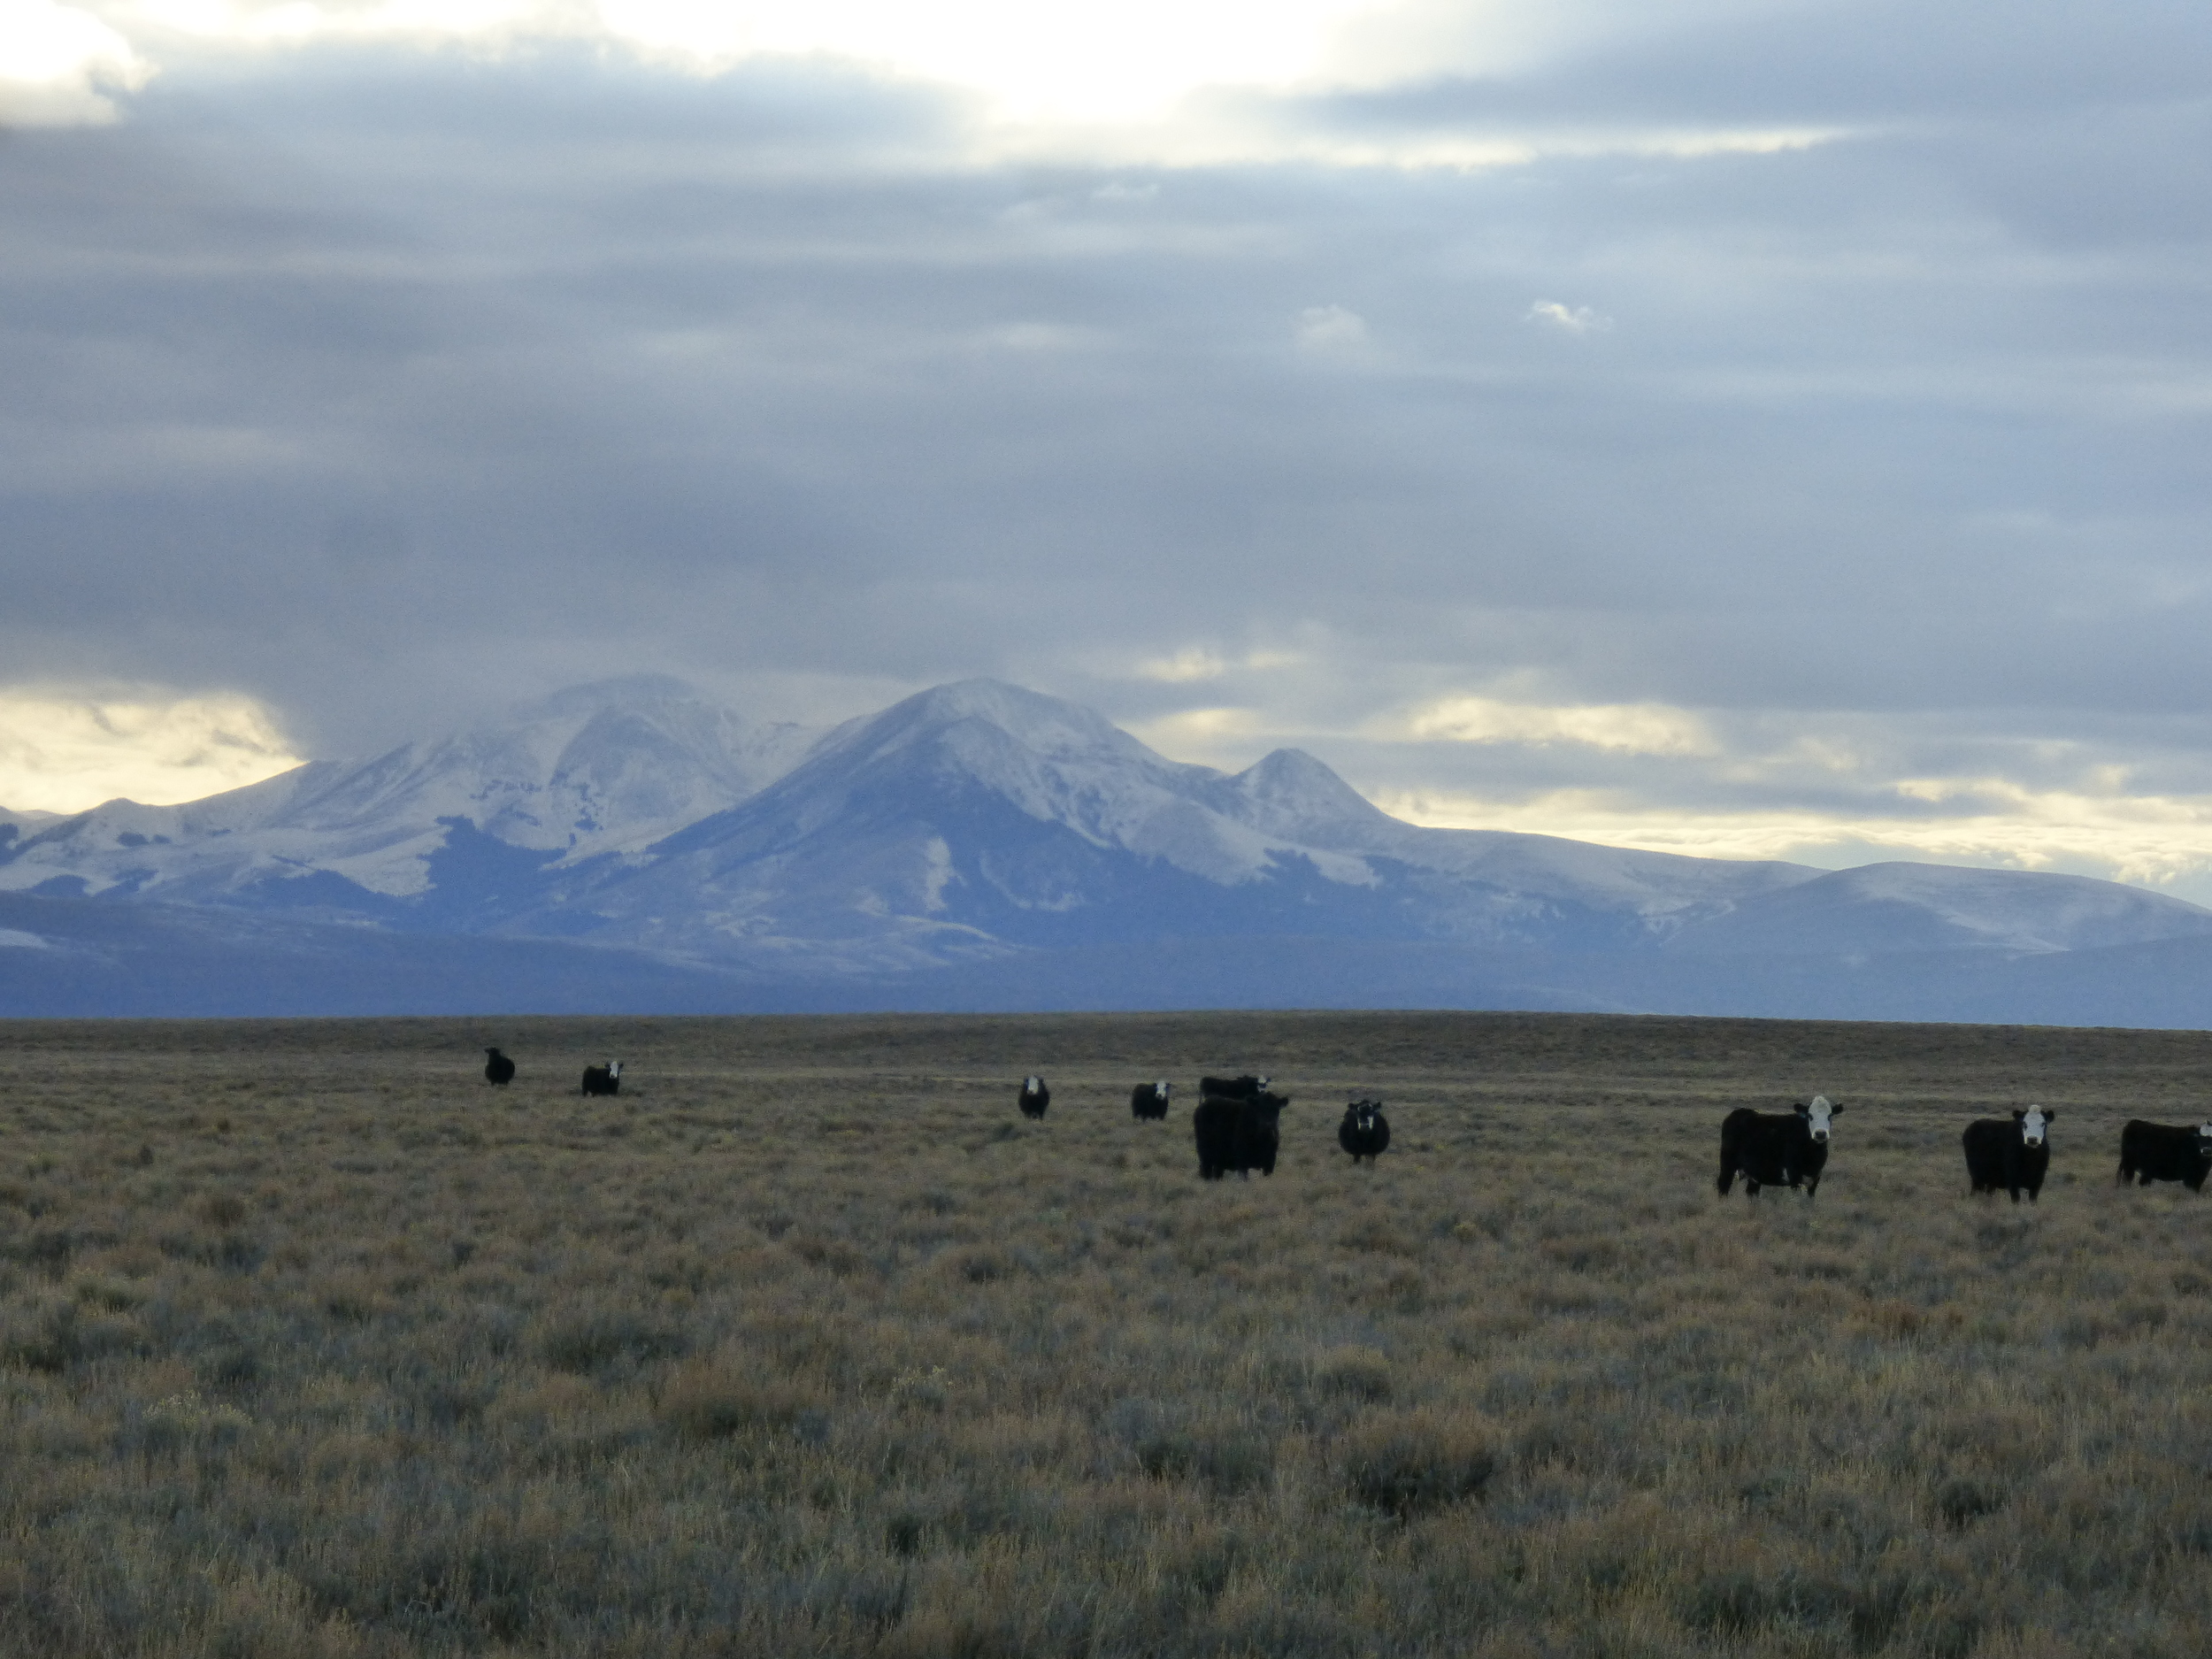 People in Montana are outnumbered 4:1 by cows. Montana has a population of about 1 million. That's a lot of cows!